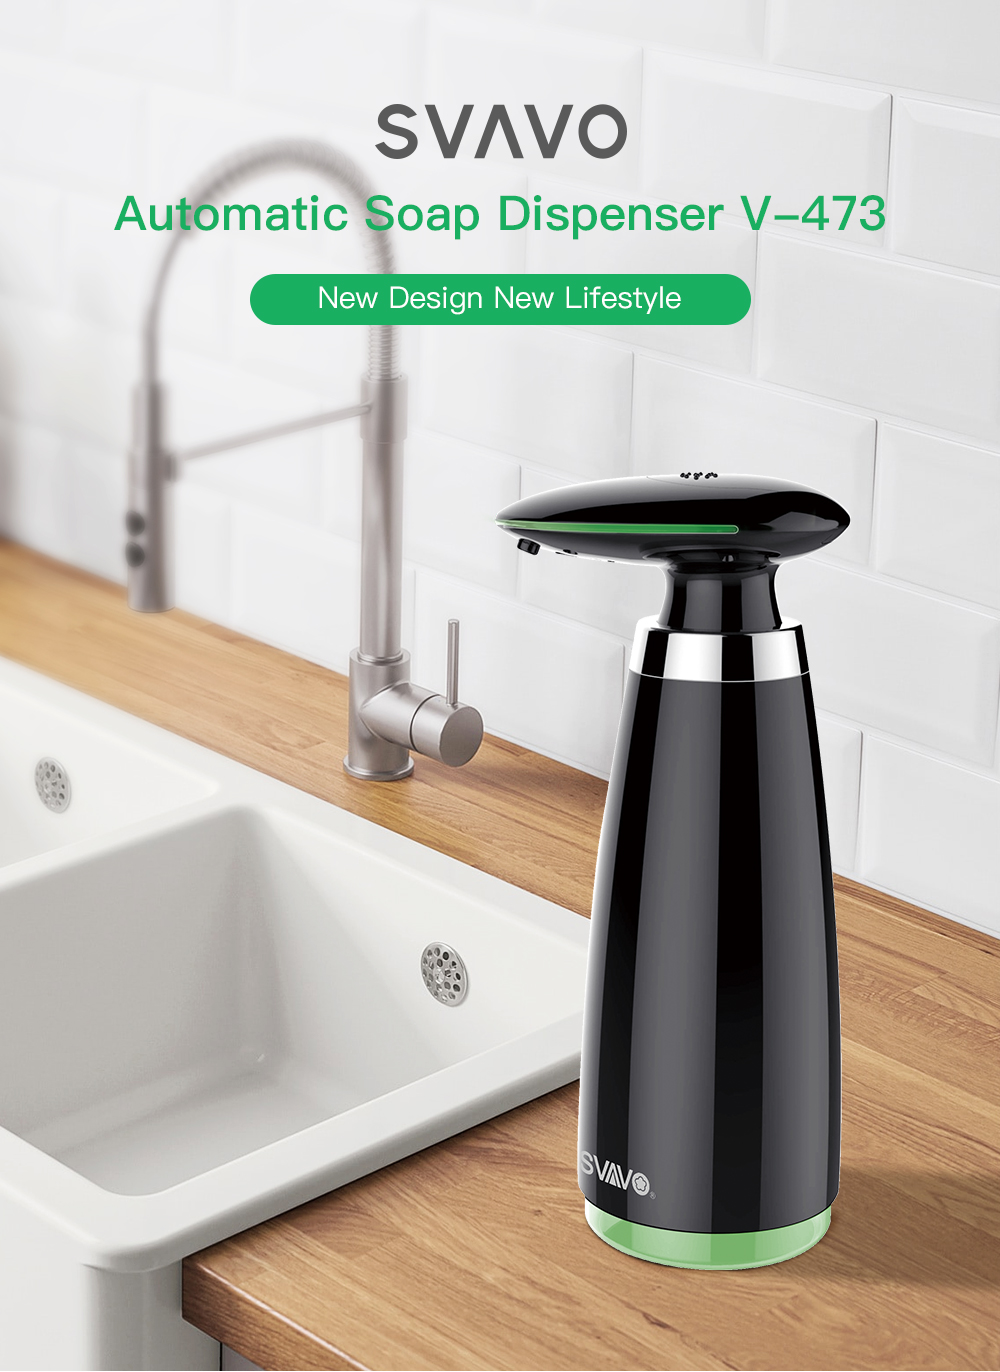 SVAVO 350ml Automatic Soap Dispenser Infrared Touchless Motion Bathroom Dispenser Smart Sensor Liquid Soap Dispenser for Kitchen